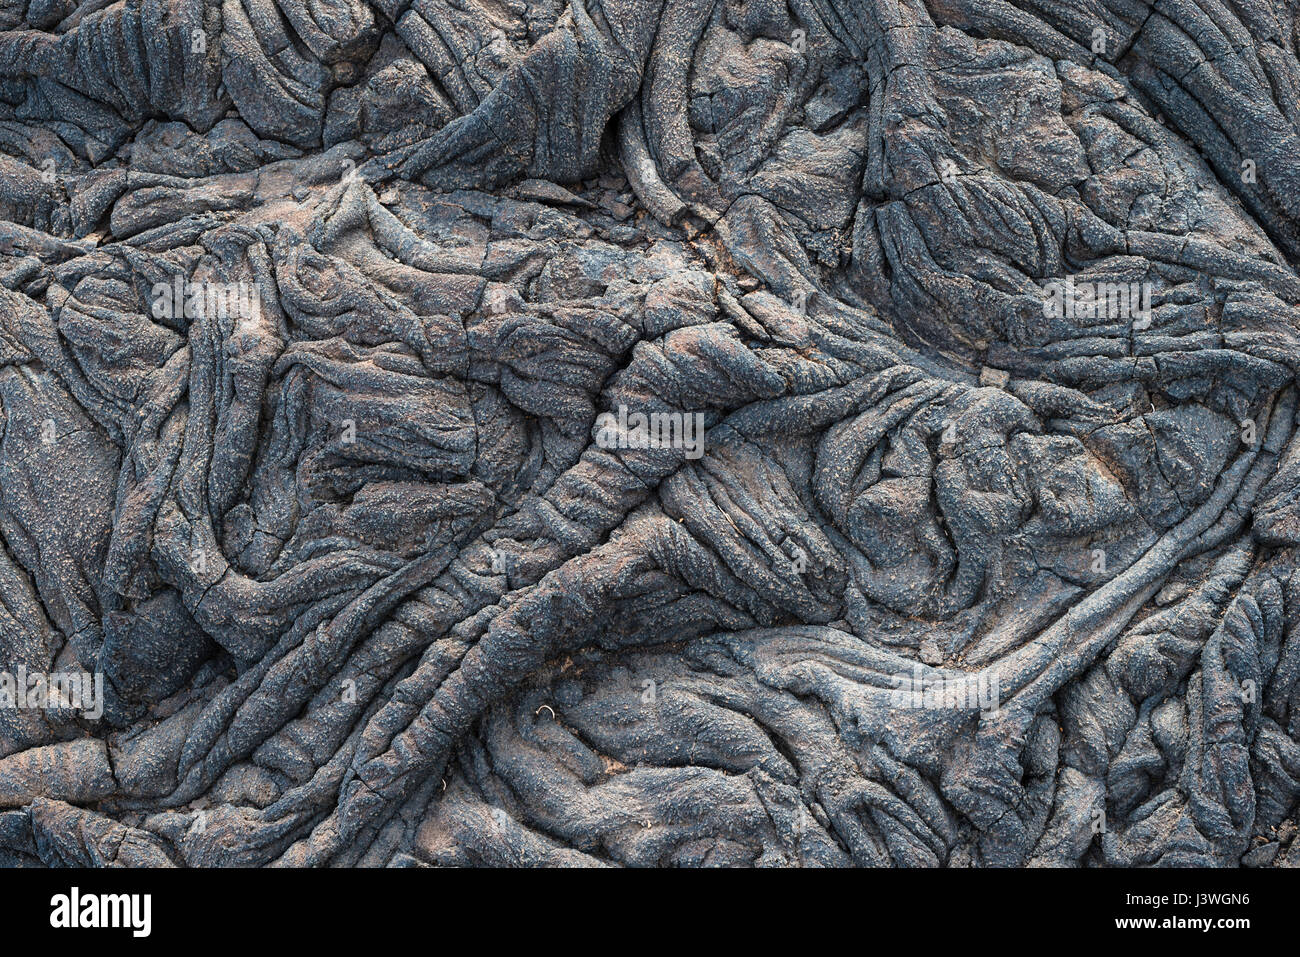 Detail of pahoehoe or ropy lava flow surface near La Restinga, El Hierro, Canary Islands, Spain - Stock Image